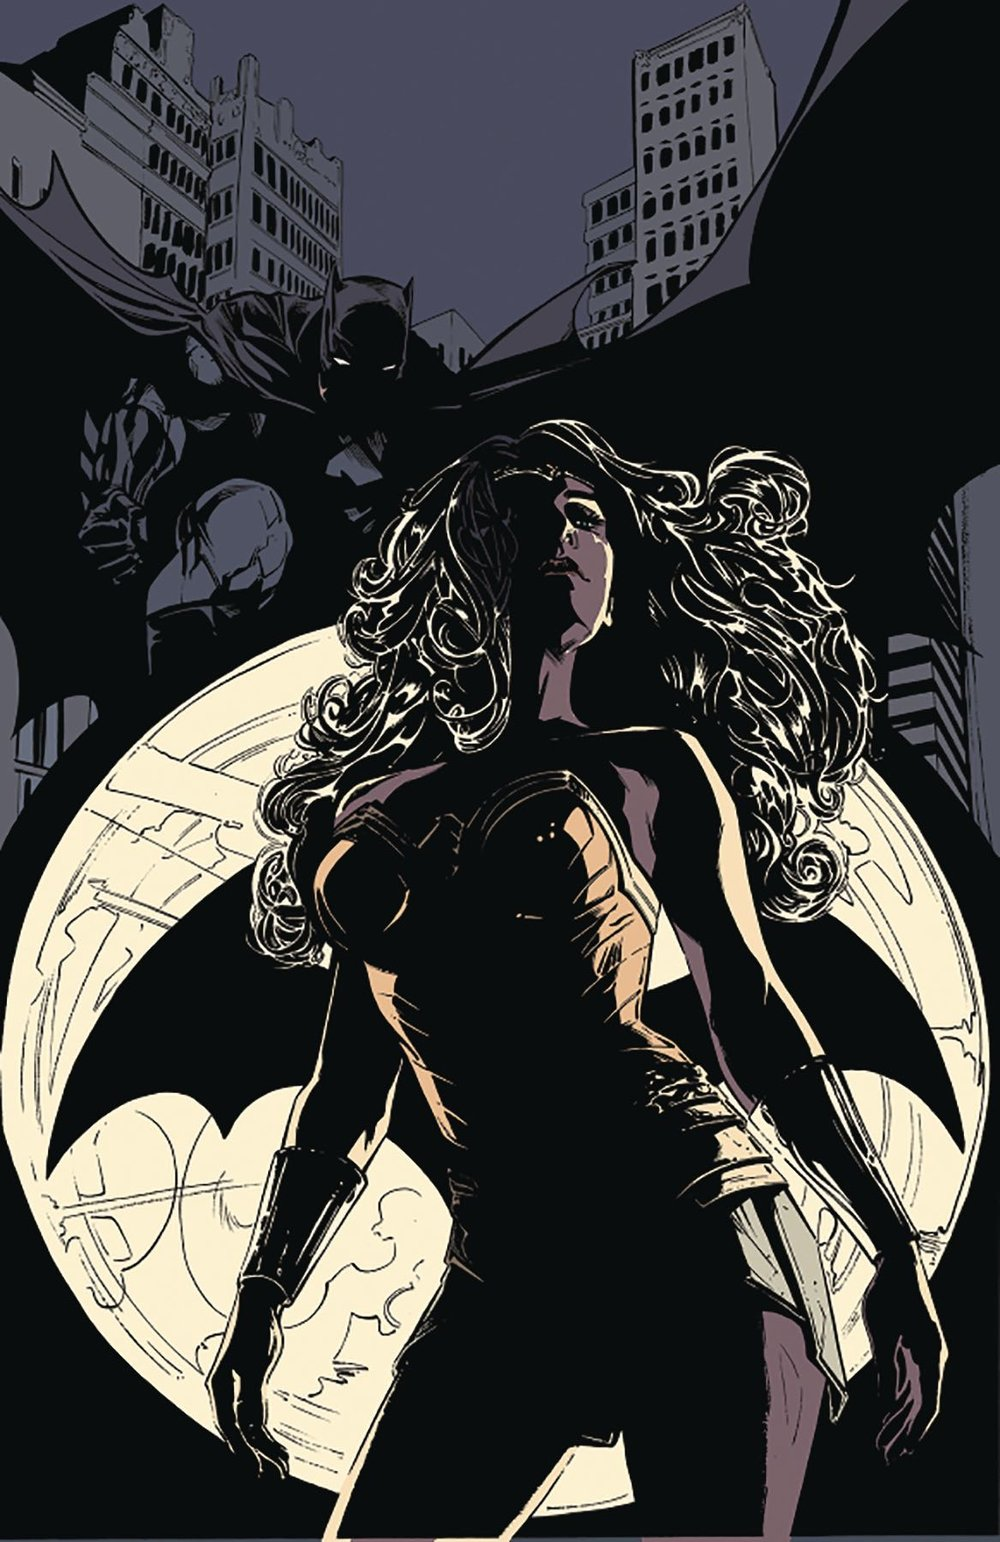 Episode 22 Cover of the Week! - (DC) Batman #40Cover by Joelle JonesWritten by Tom KingIllustrated by Joelle JonesDid the Content Match the Drapes? - No. :'(